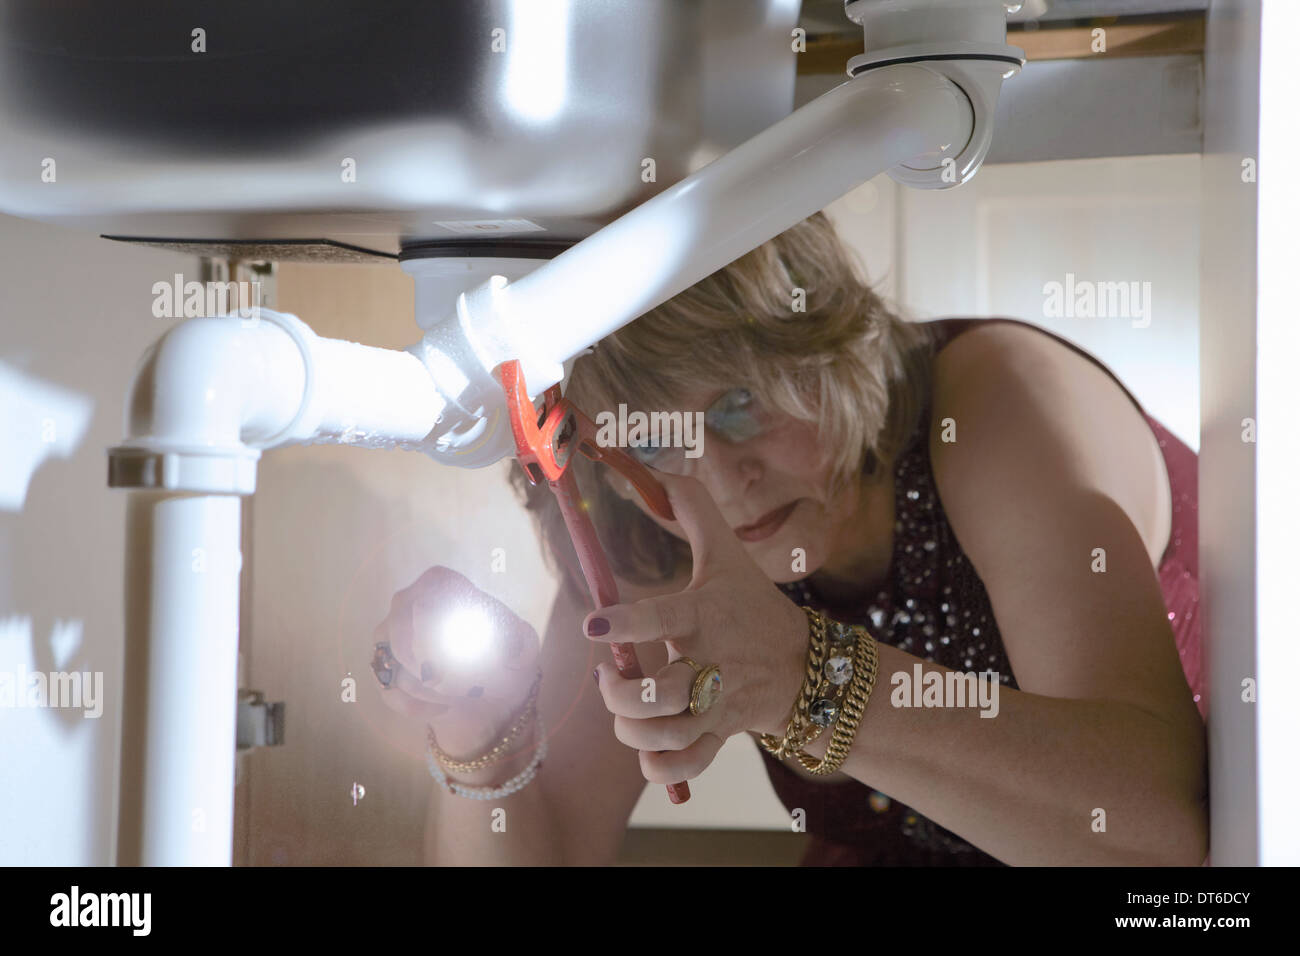 Senior woman in evening wear fixing pipes under kitchen sink - Stock Image